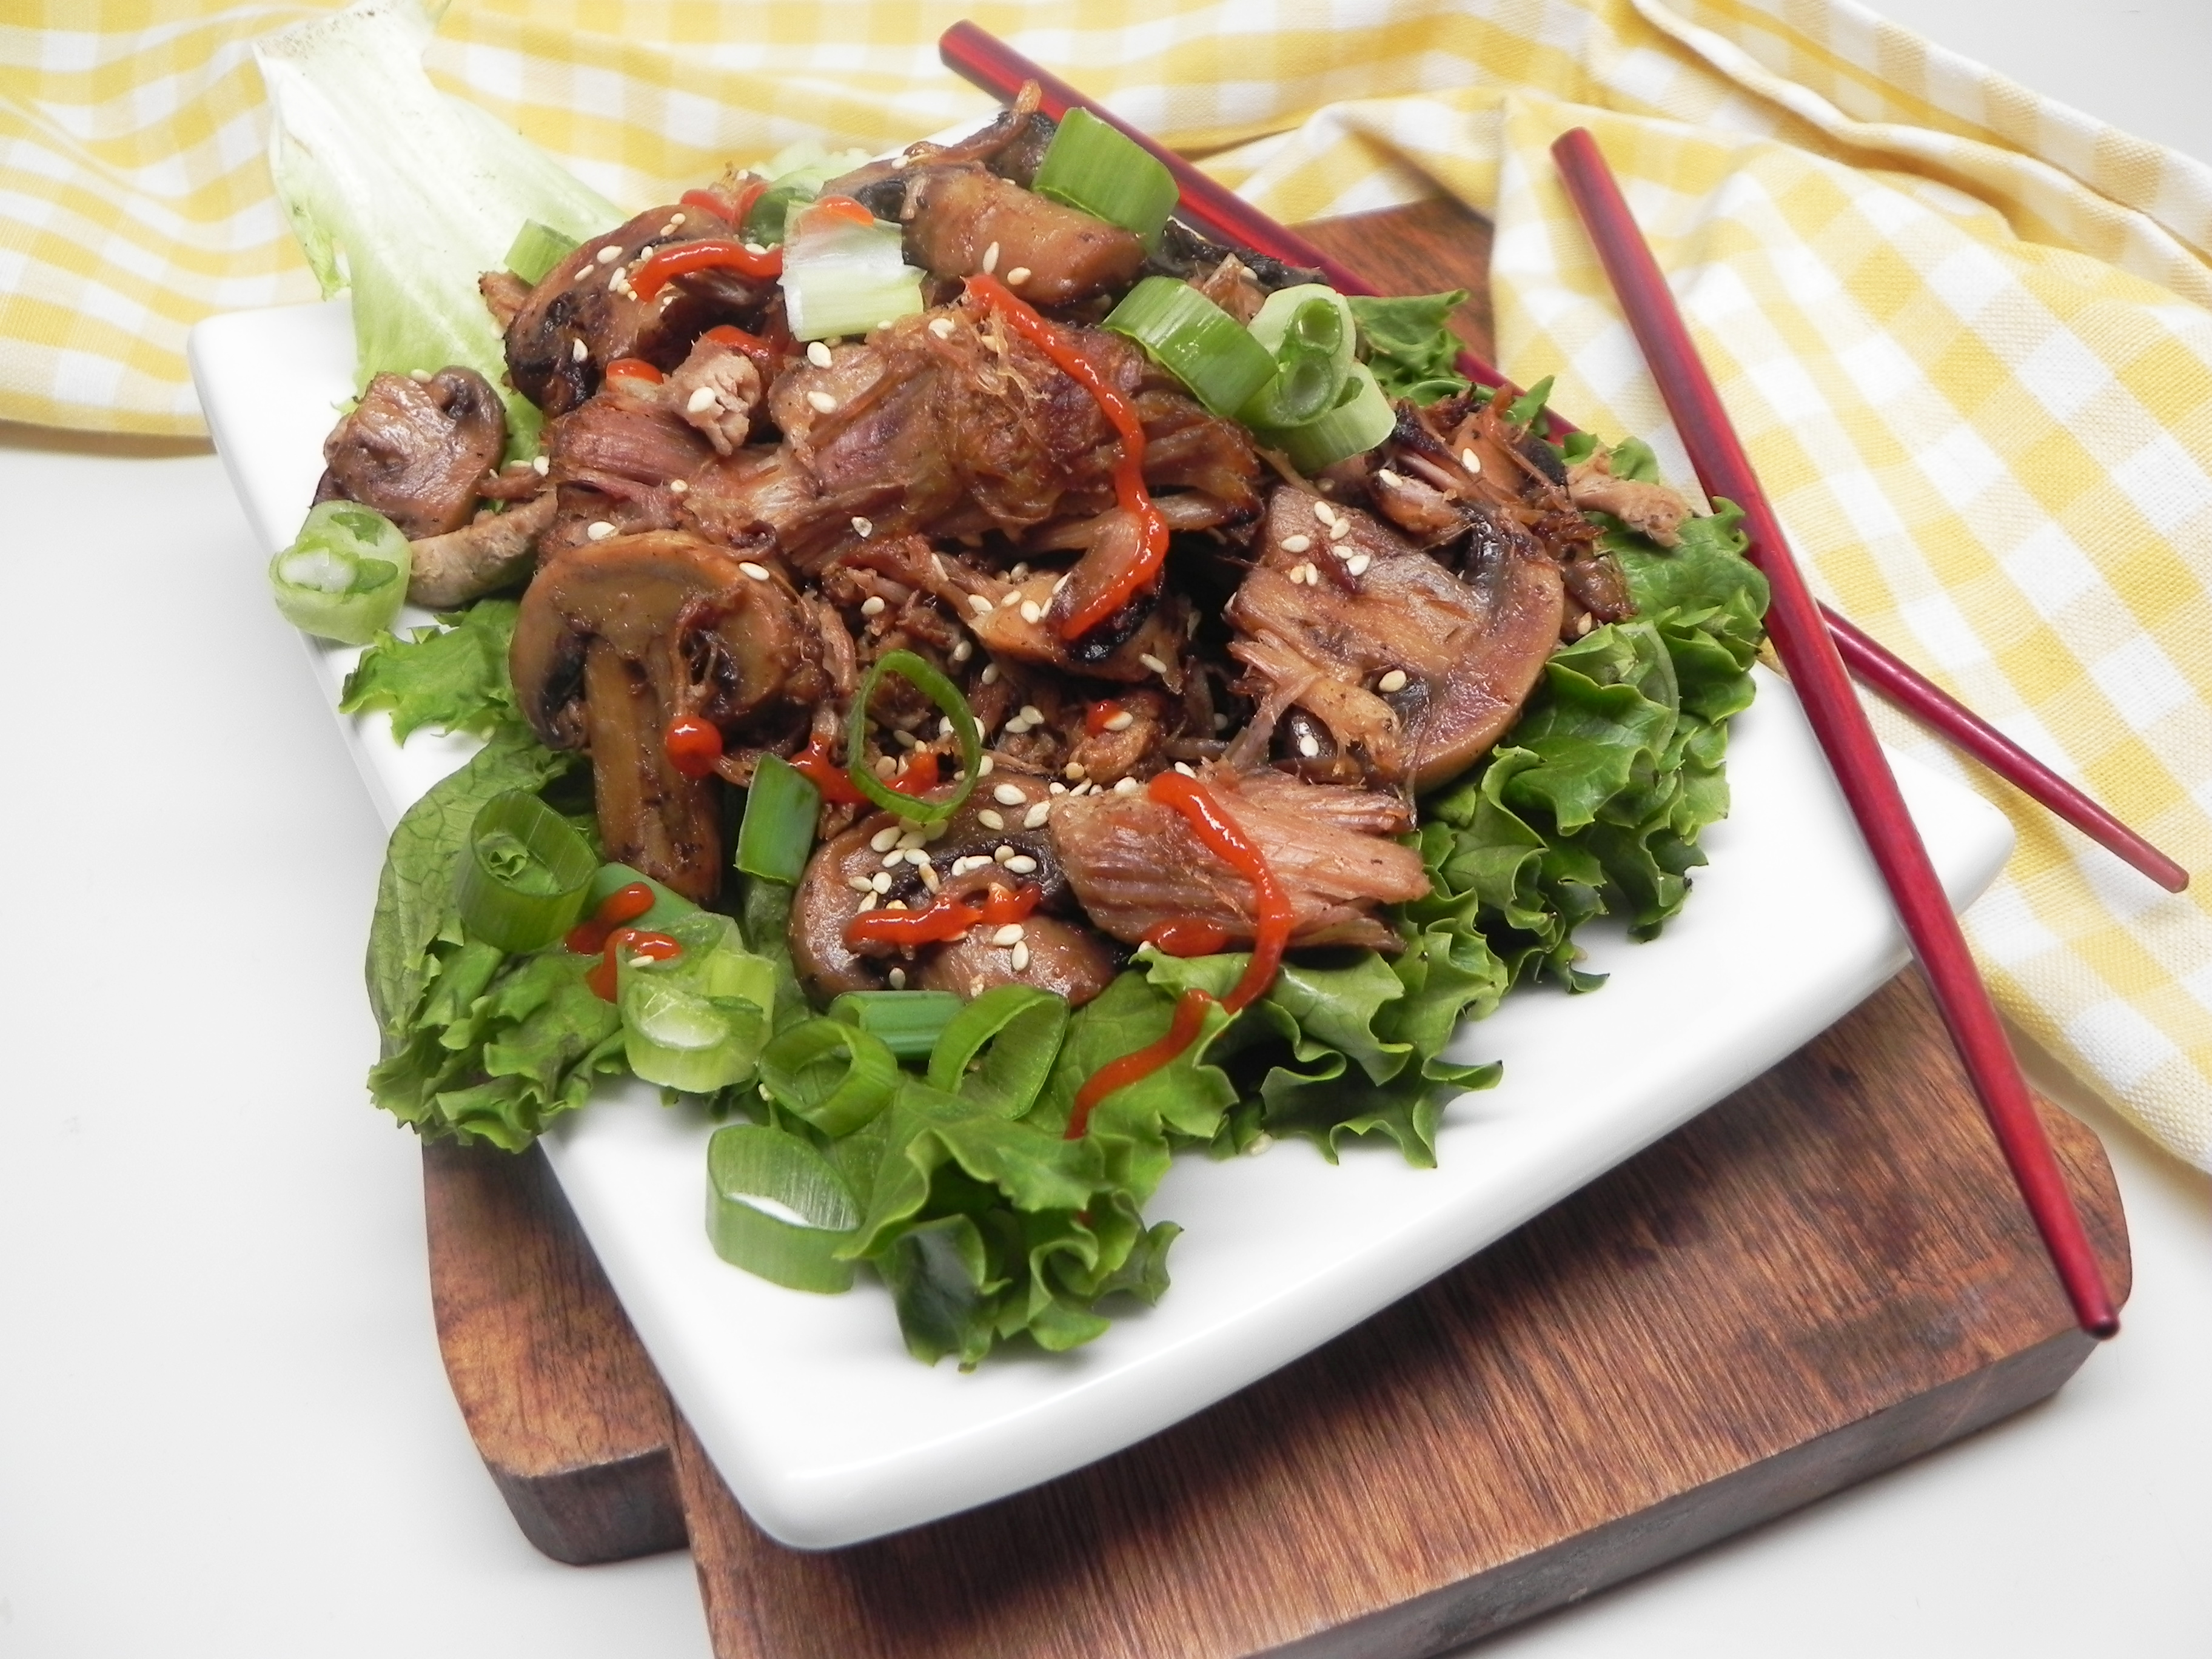 Instant Pot® Asian-Style Pulled Pork